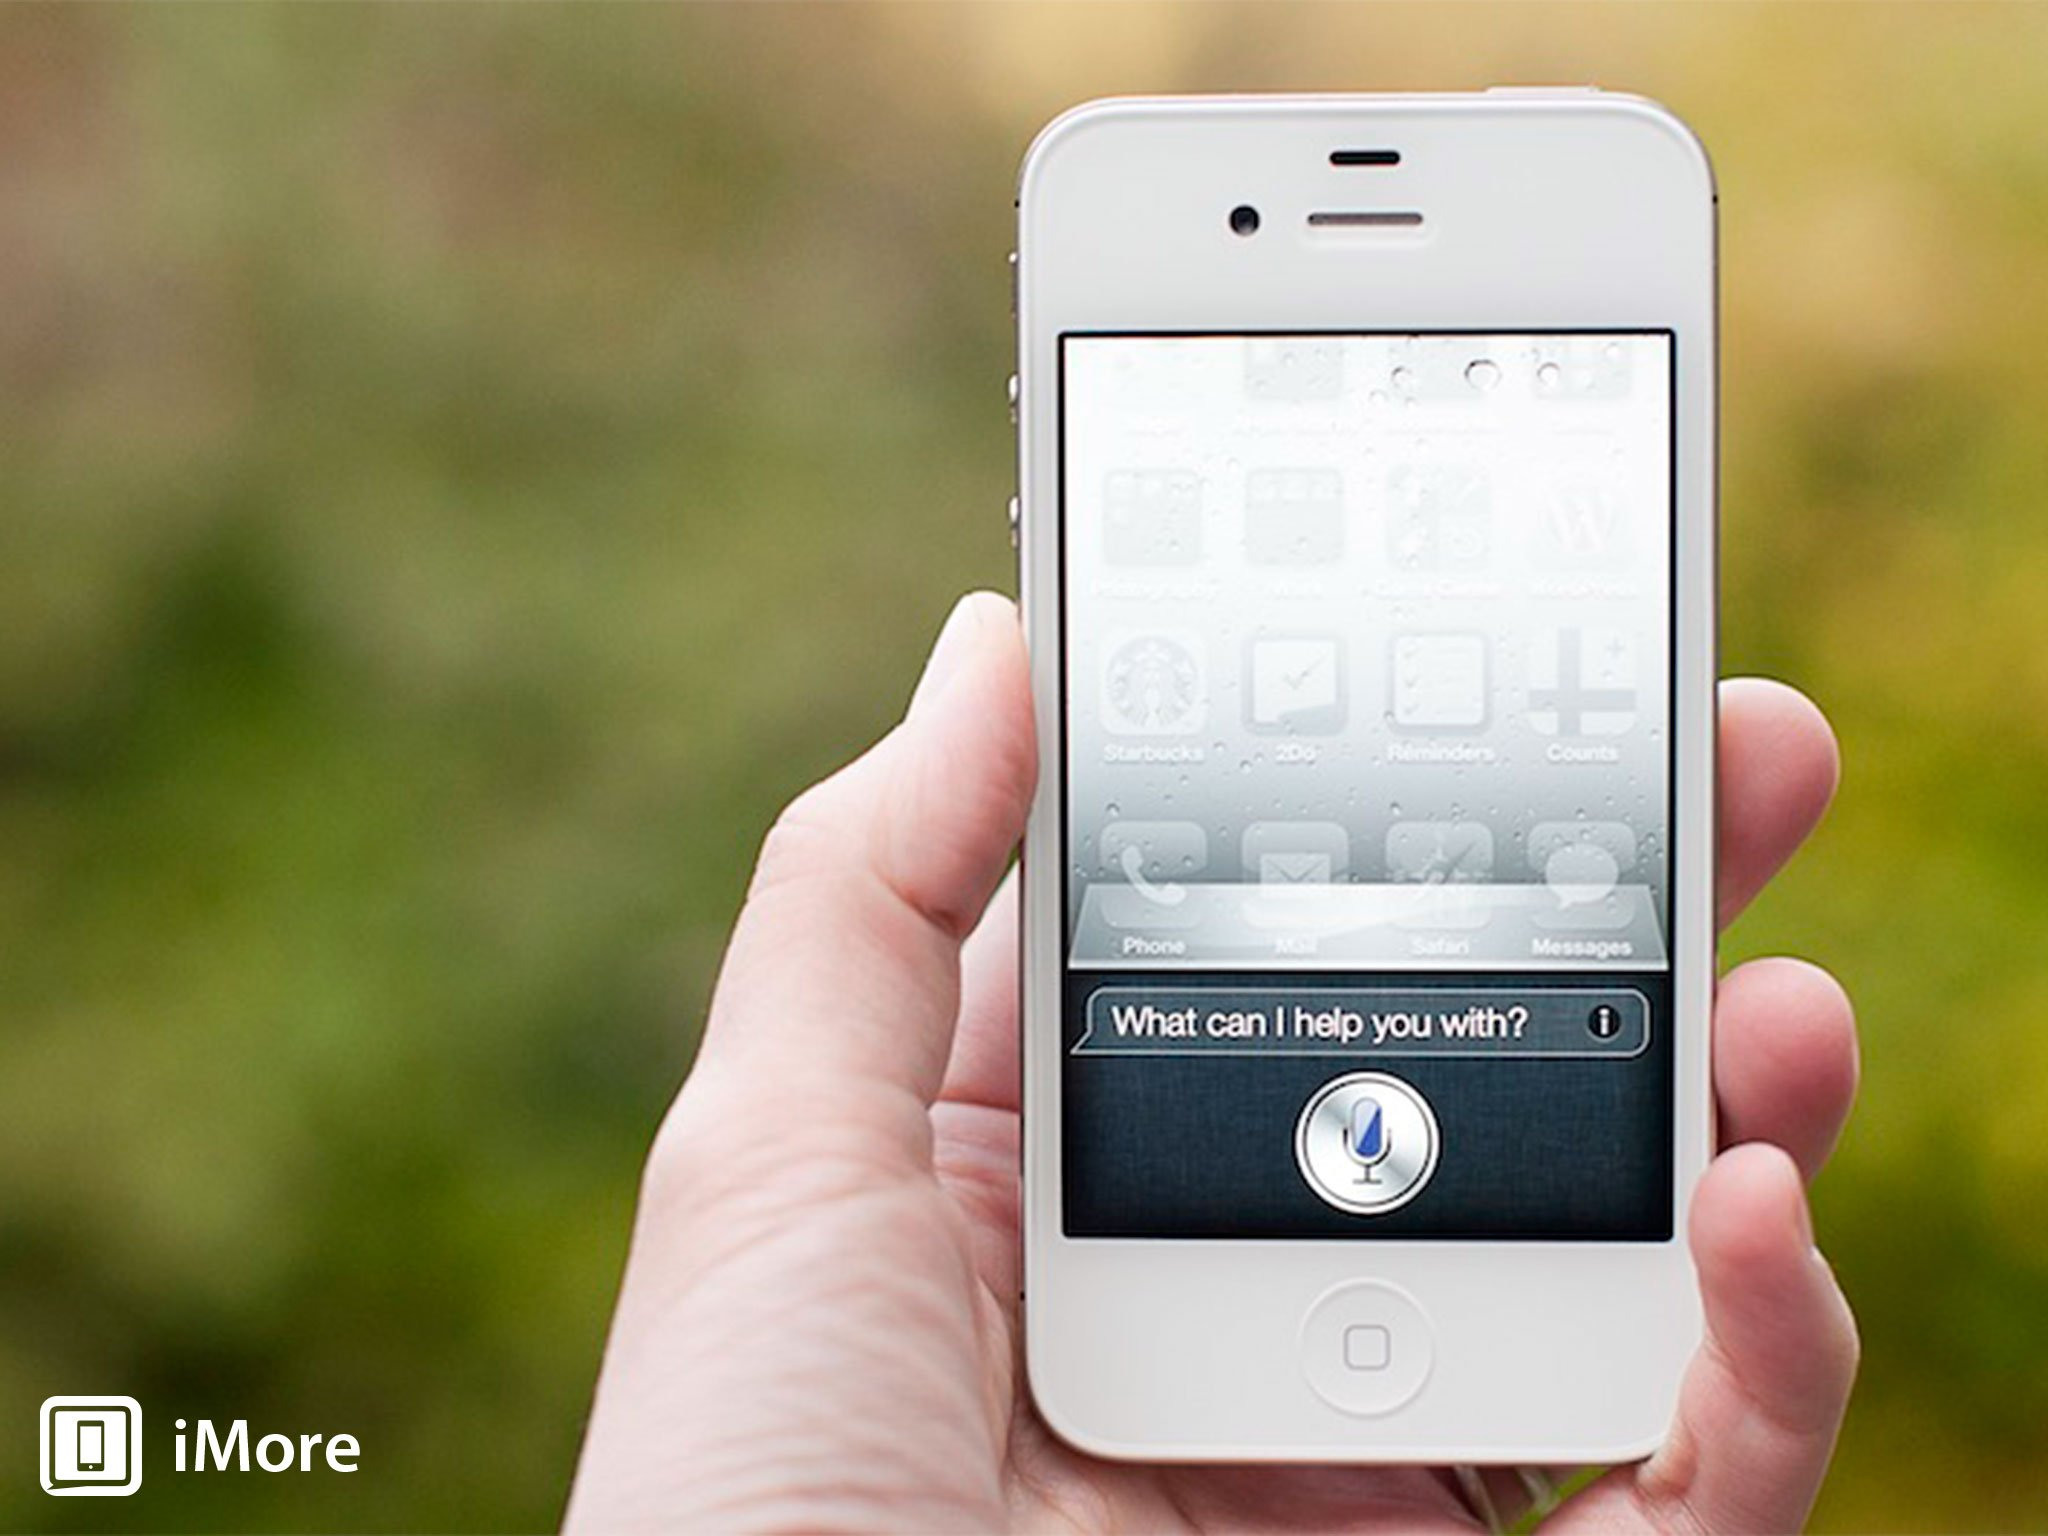 Iphone 4s Iphone 4s Review Imore